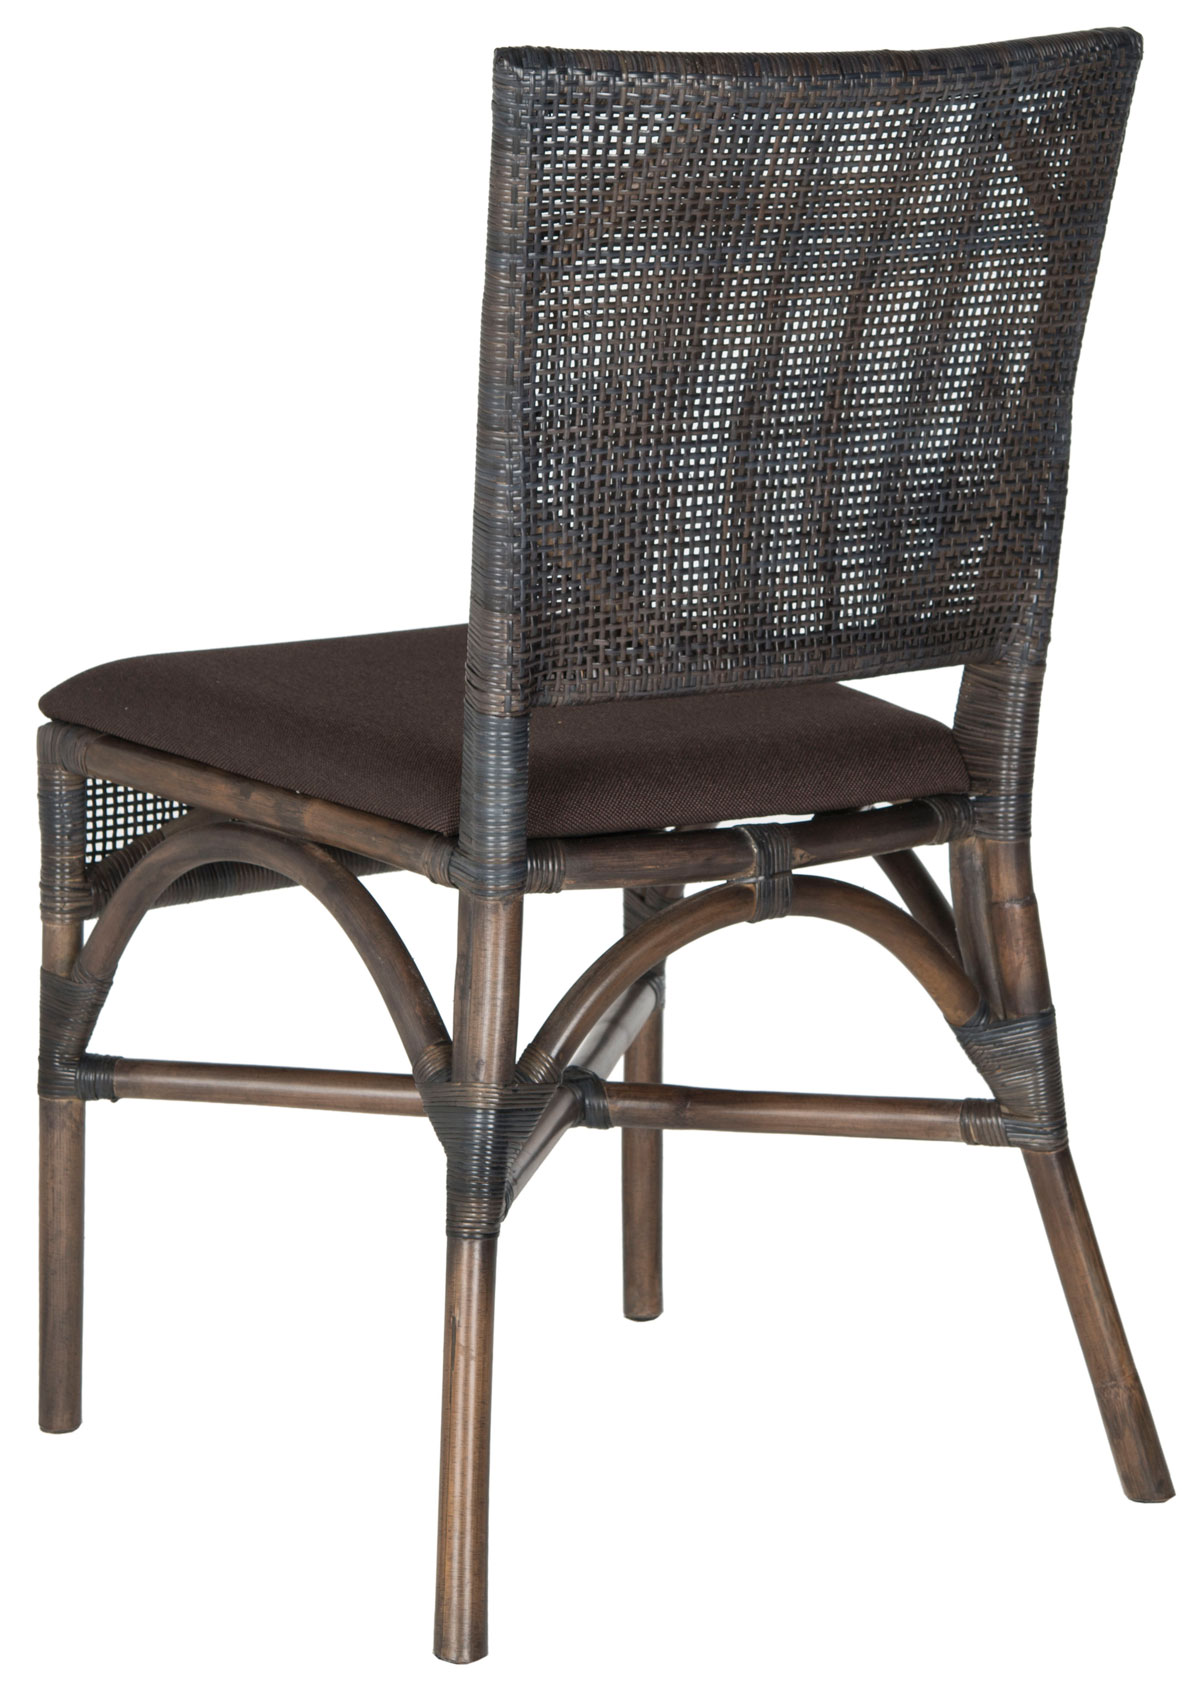 sea4007a set2 dining chairs furniture by safavieh. Black Bedroom Furniture Sets. Home Design Ideas